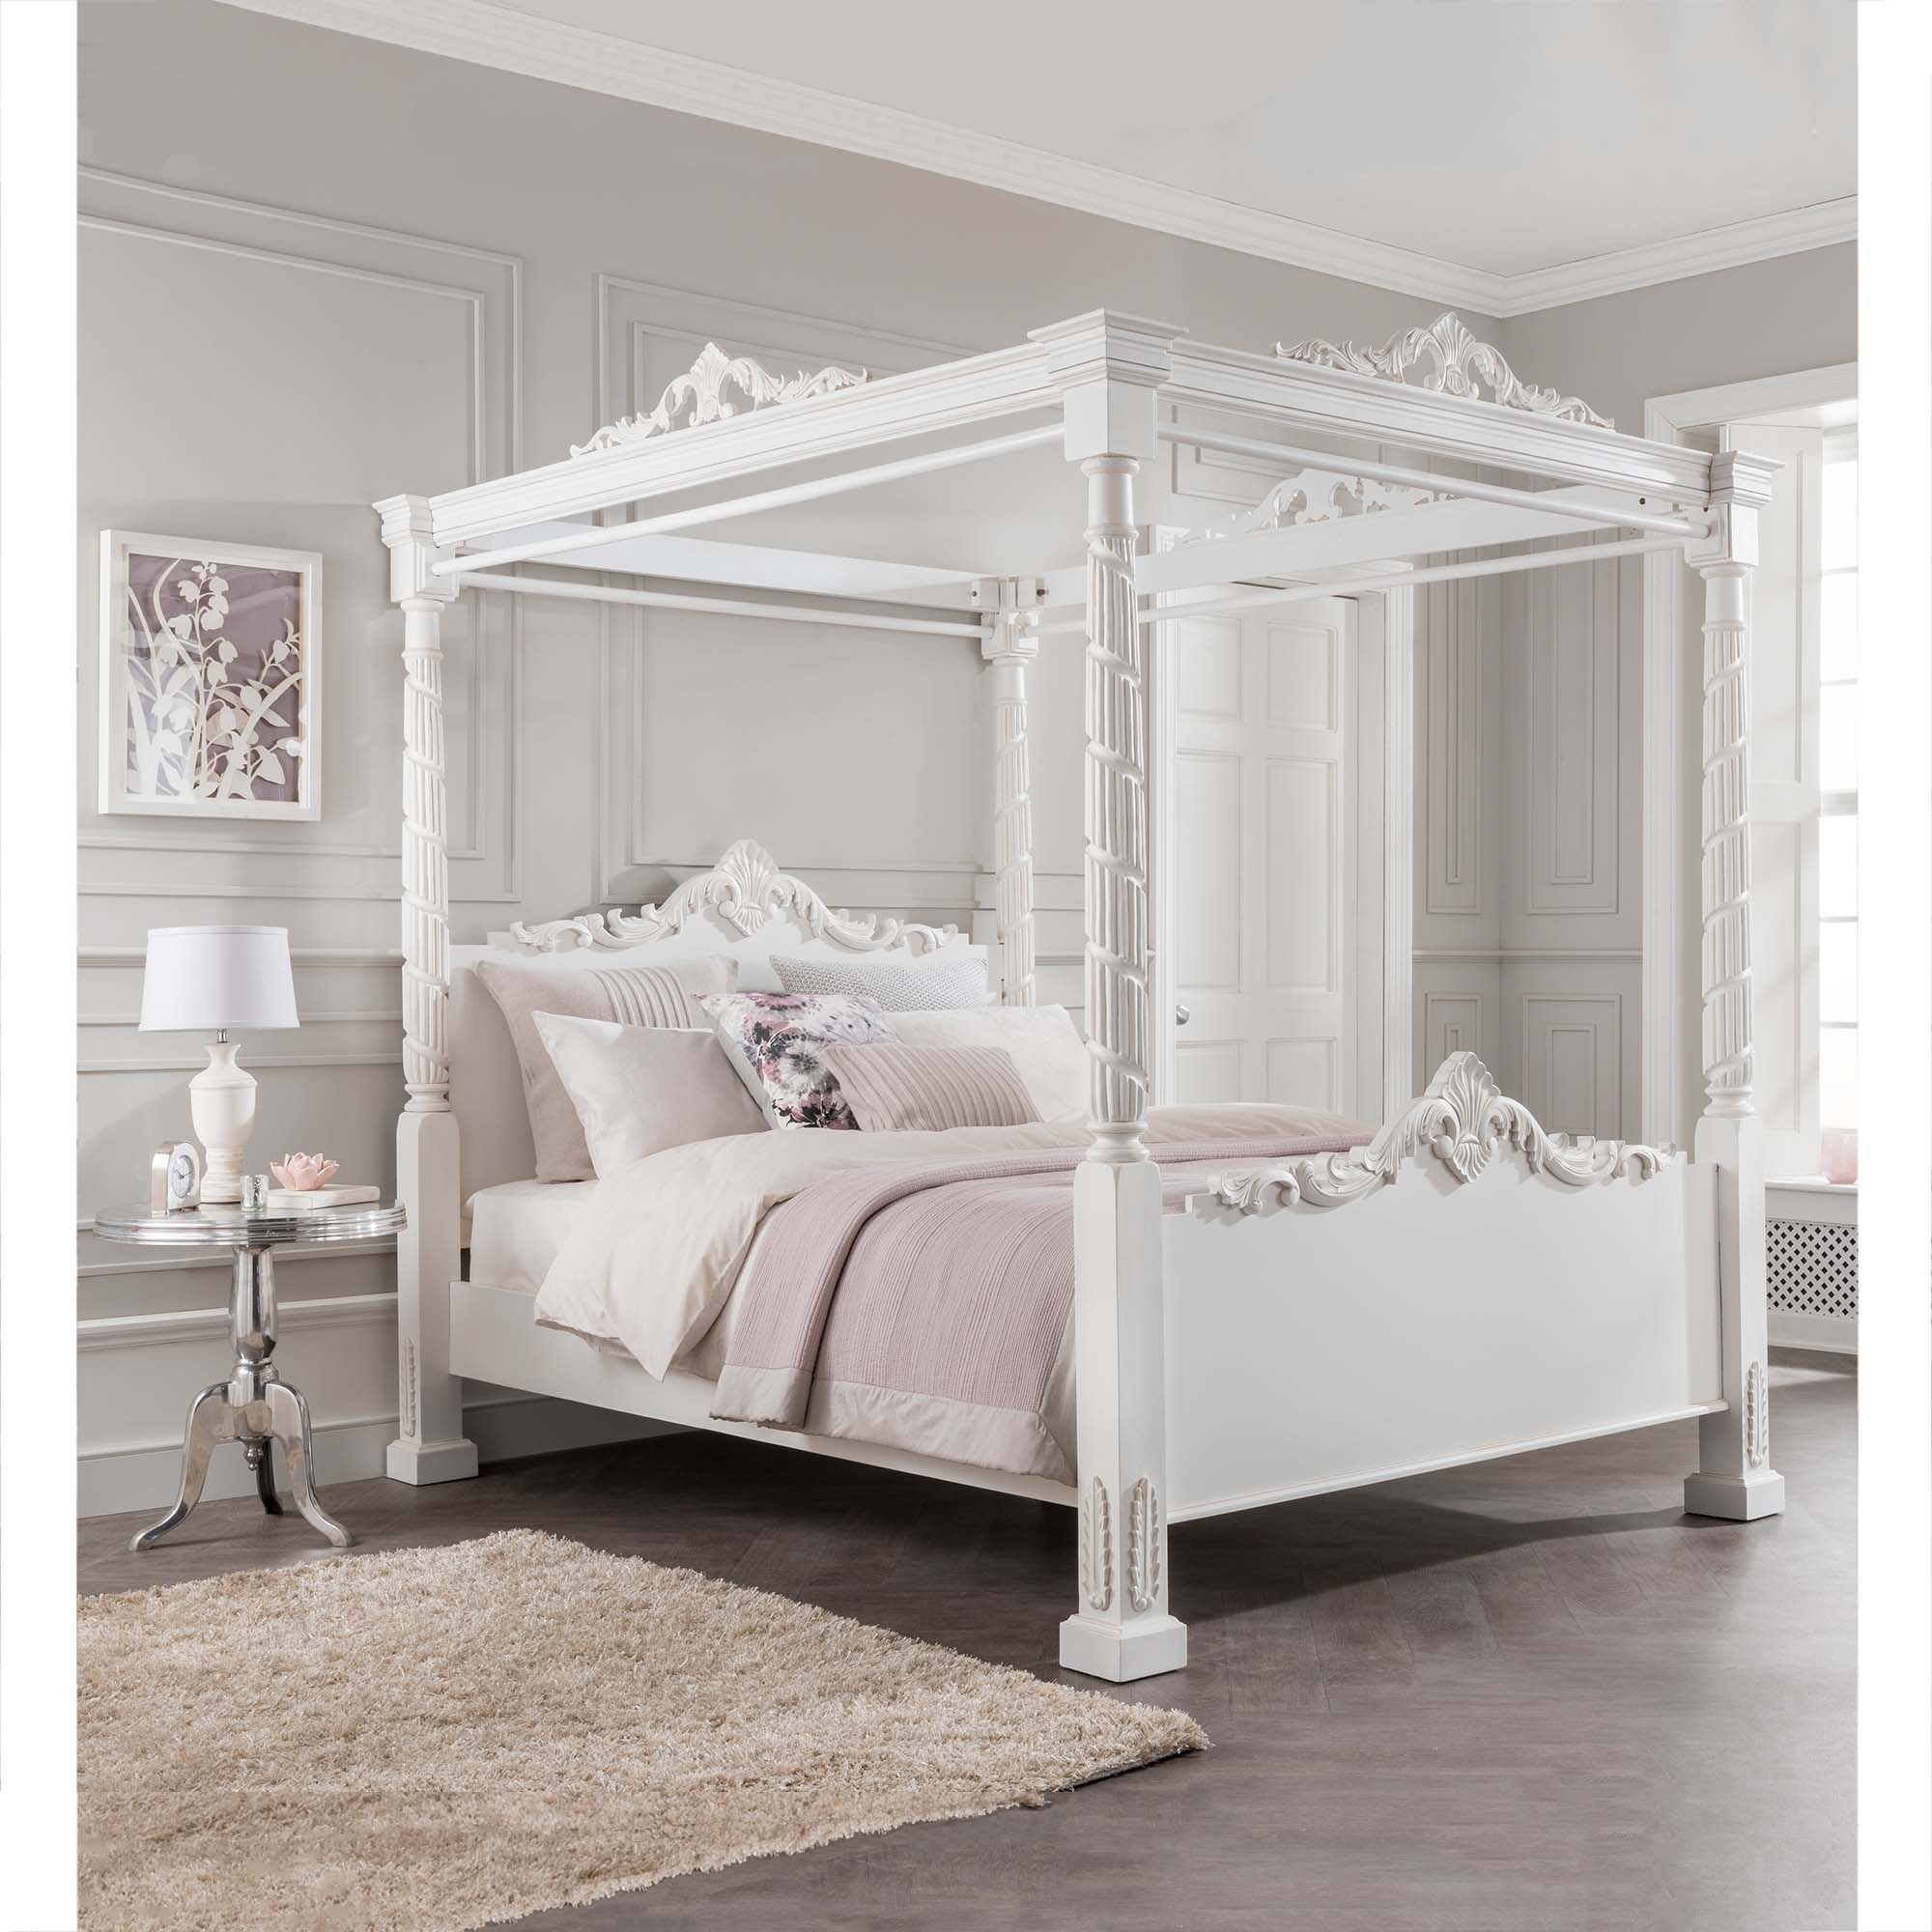 Attractive Four Poster Bed Uk Part - 3: Lincoln Four Poster Antique French Style Bed